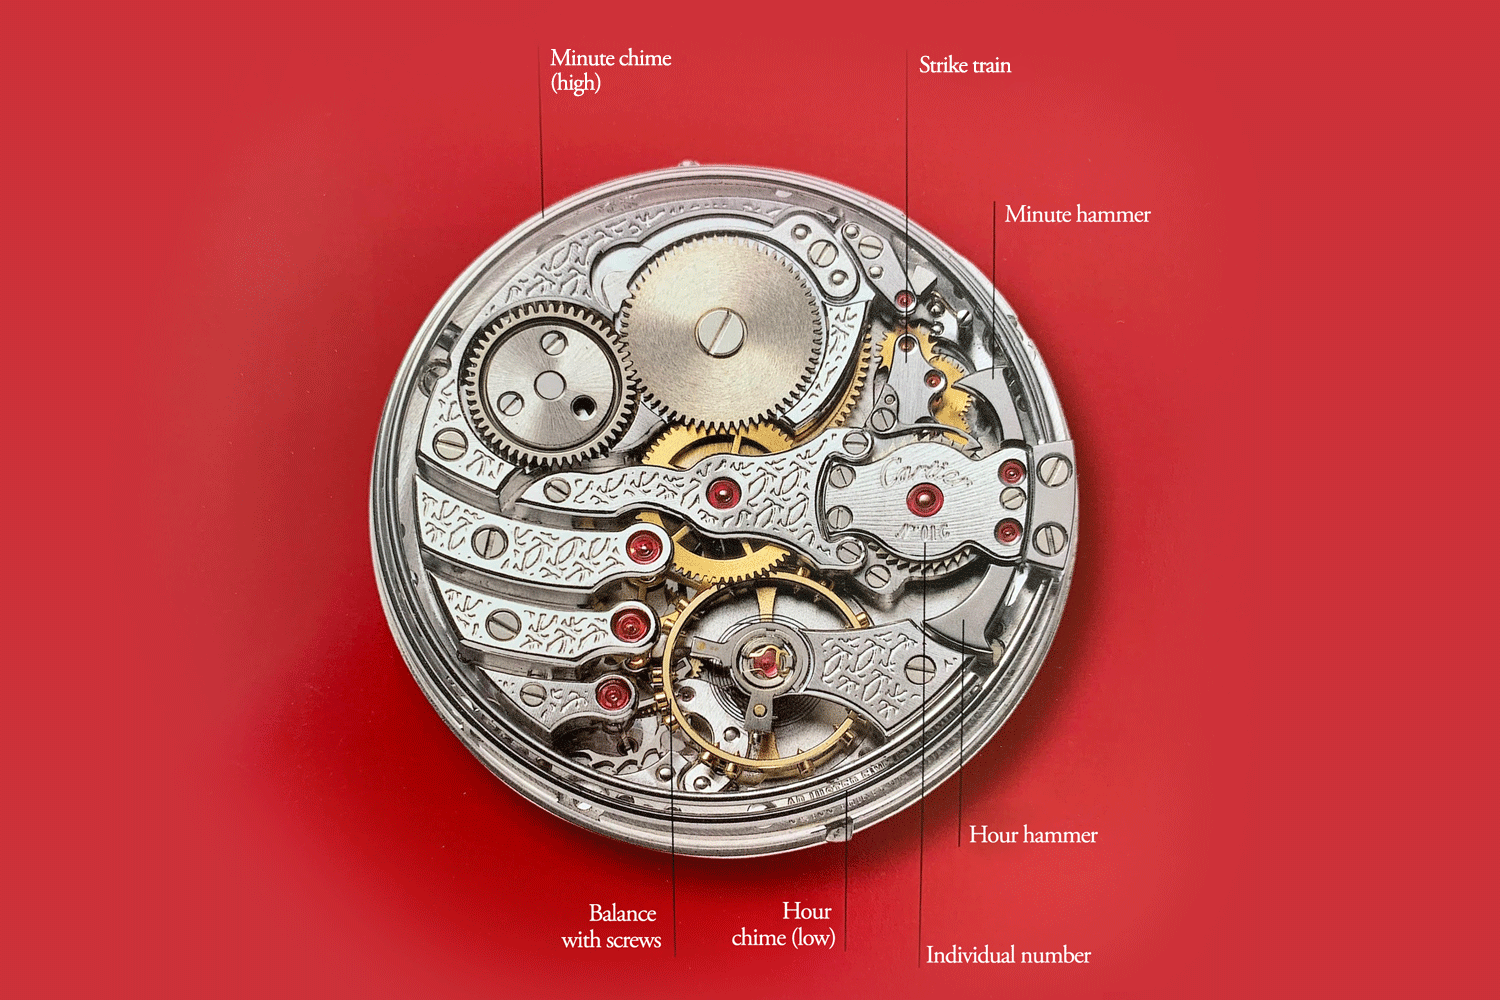 The Cartier Minute Repeater, in fact, received two different calibres: The yellow gold (2003) and pink gold (2004) versions used the Calibre 9401 MC (most likely built on a Fred Piguet ebauche) and the white gold version uses the Calibre 909 MC, which according to Geo Cramer was by Renault & Papi themselves, pictured here is the latter